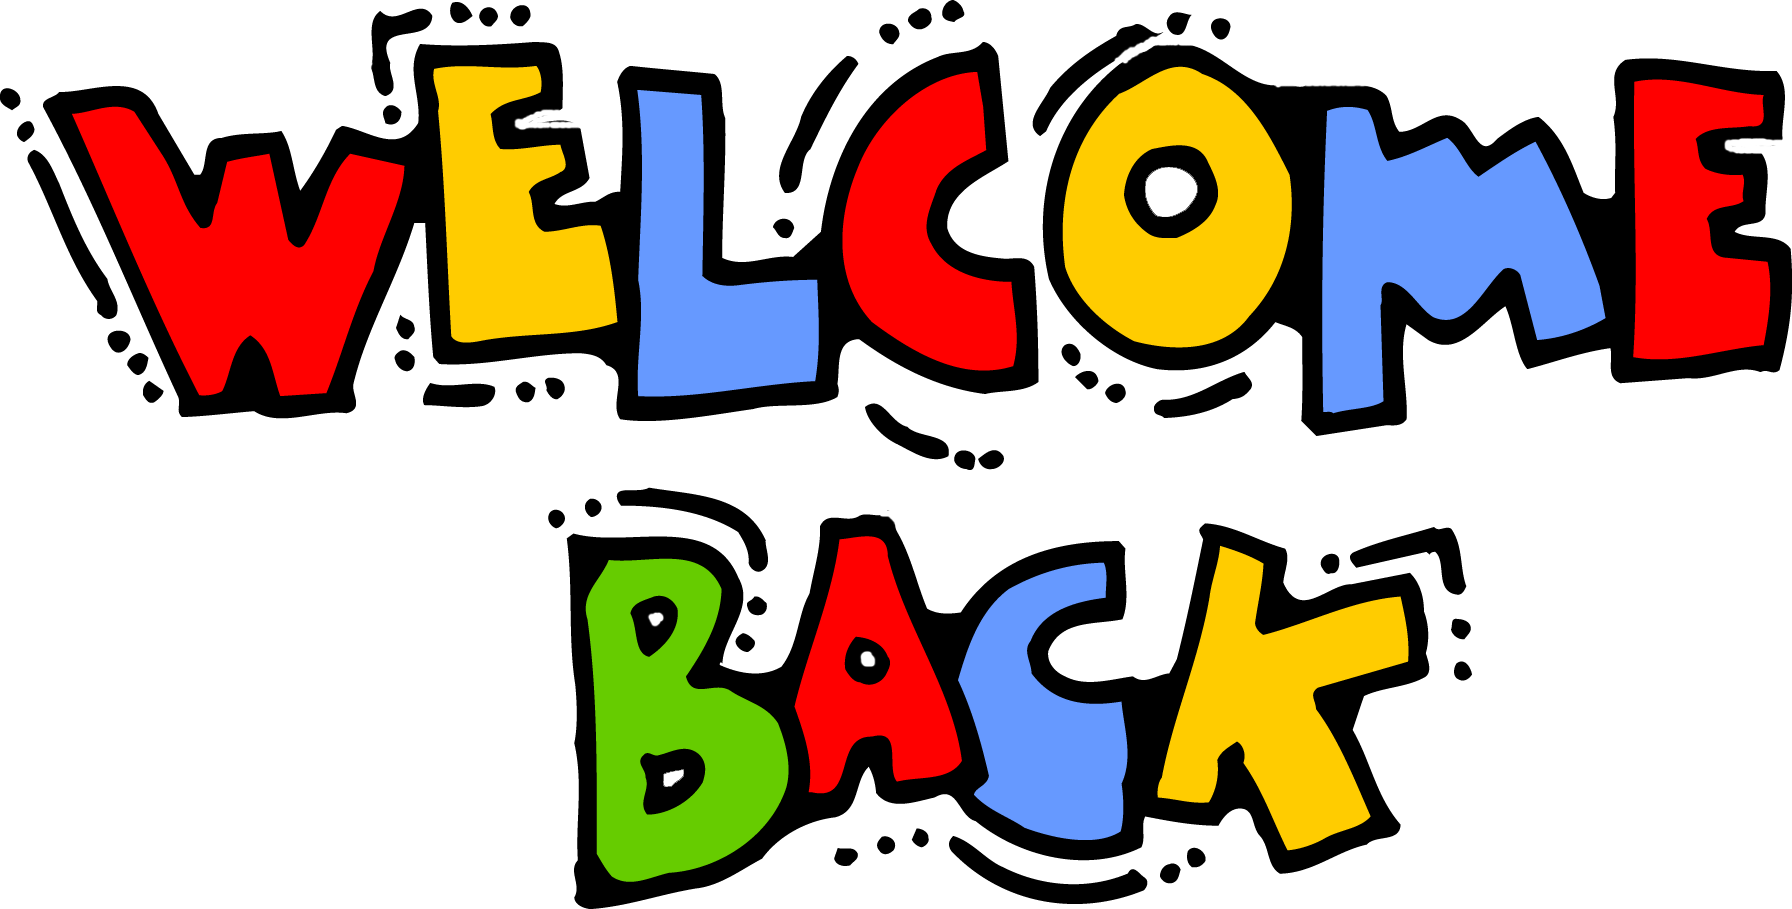 Back clipart back side. Collection of welcome